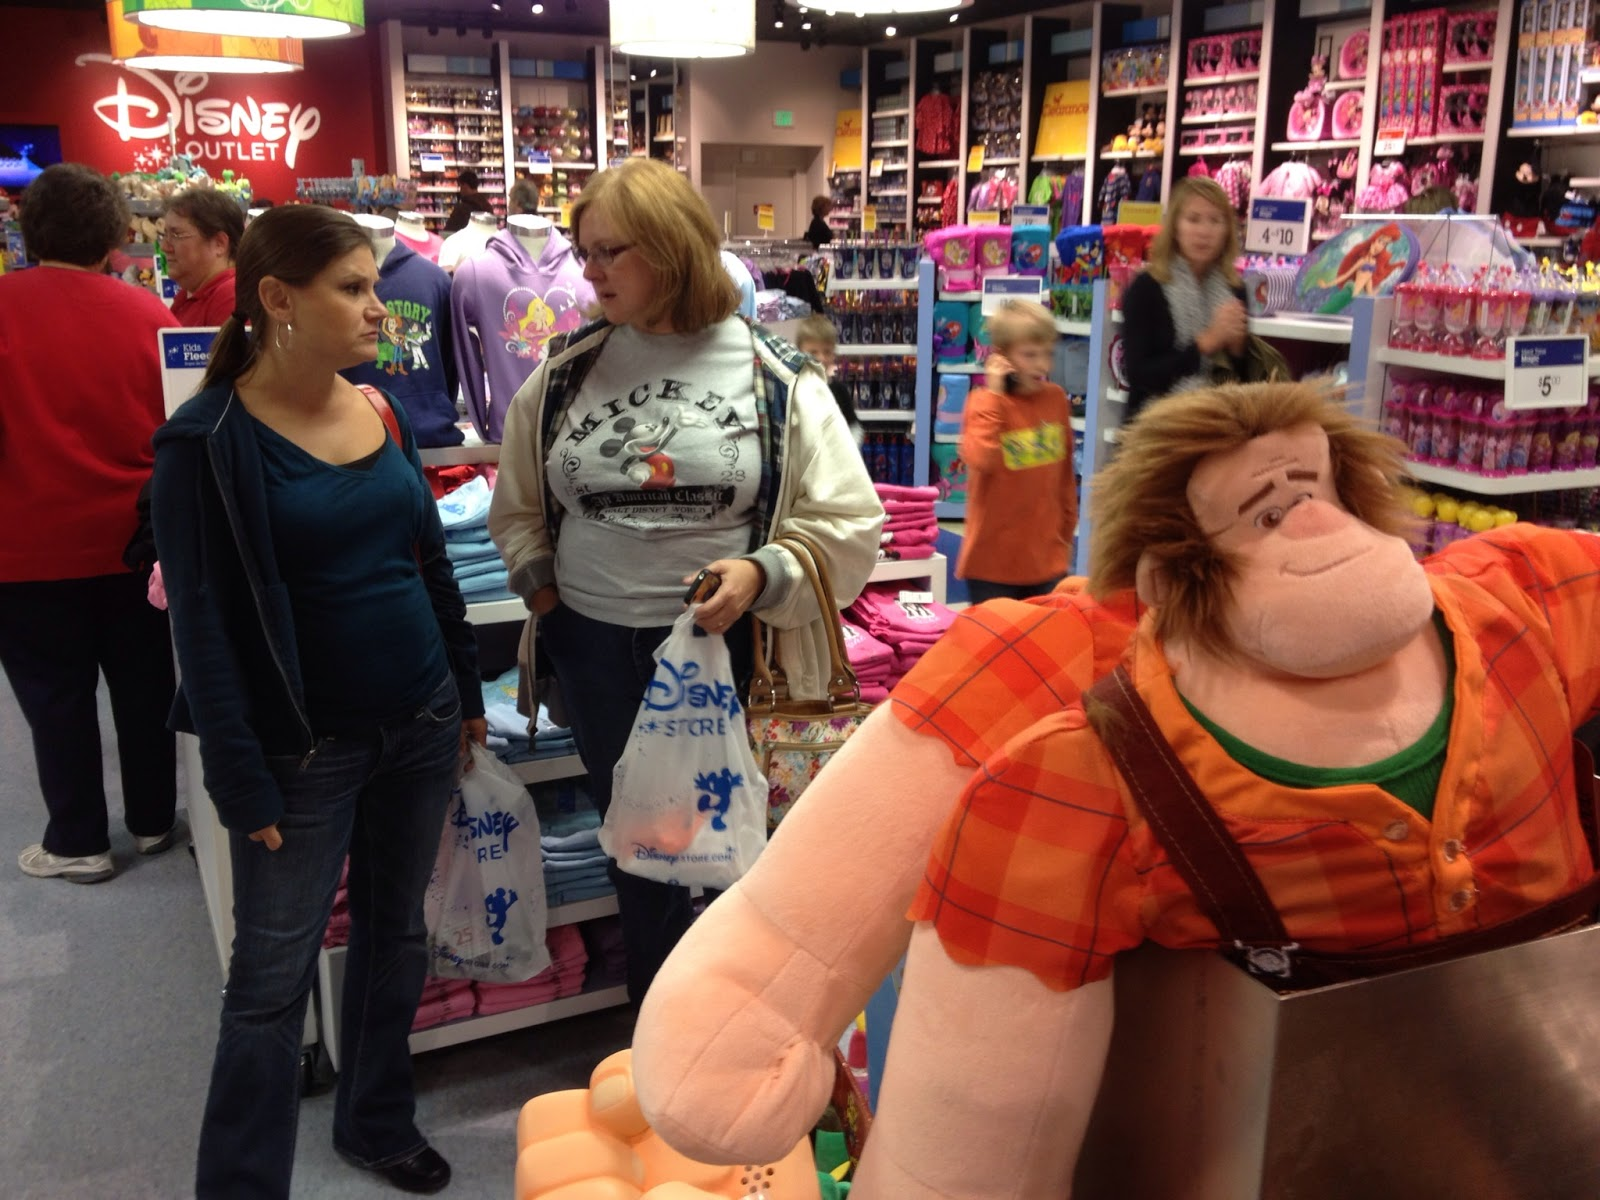 Disney Store Toys : Jedi mouseketeer quot disney s wreck it ralph toys spotted